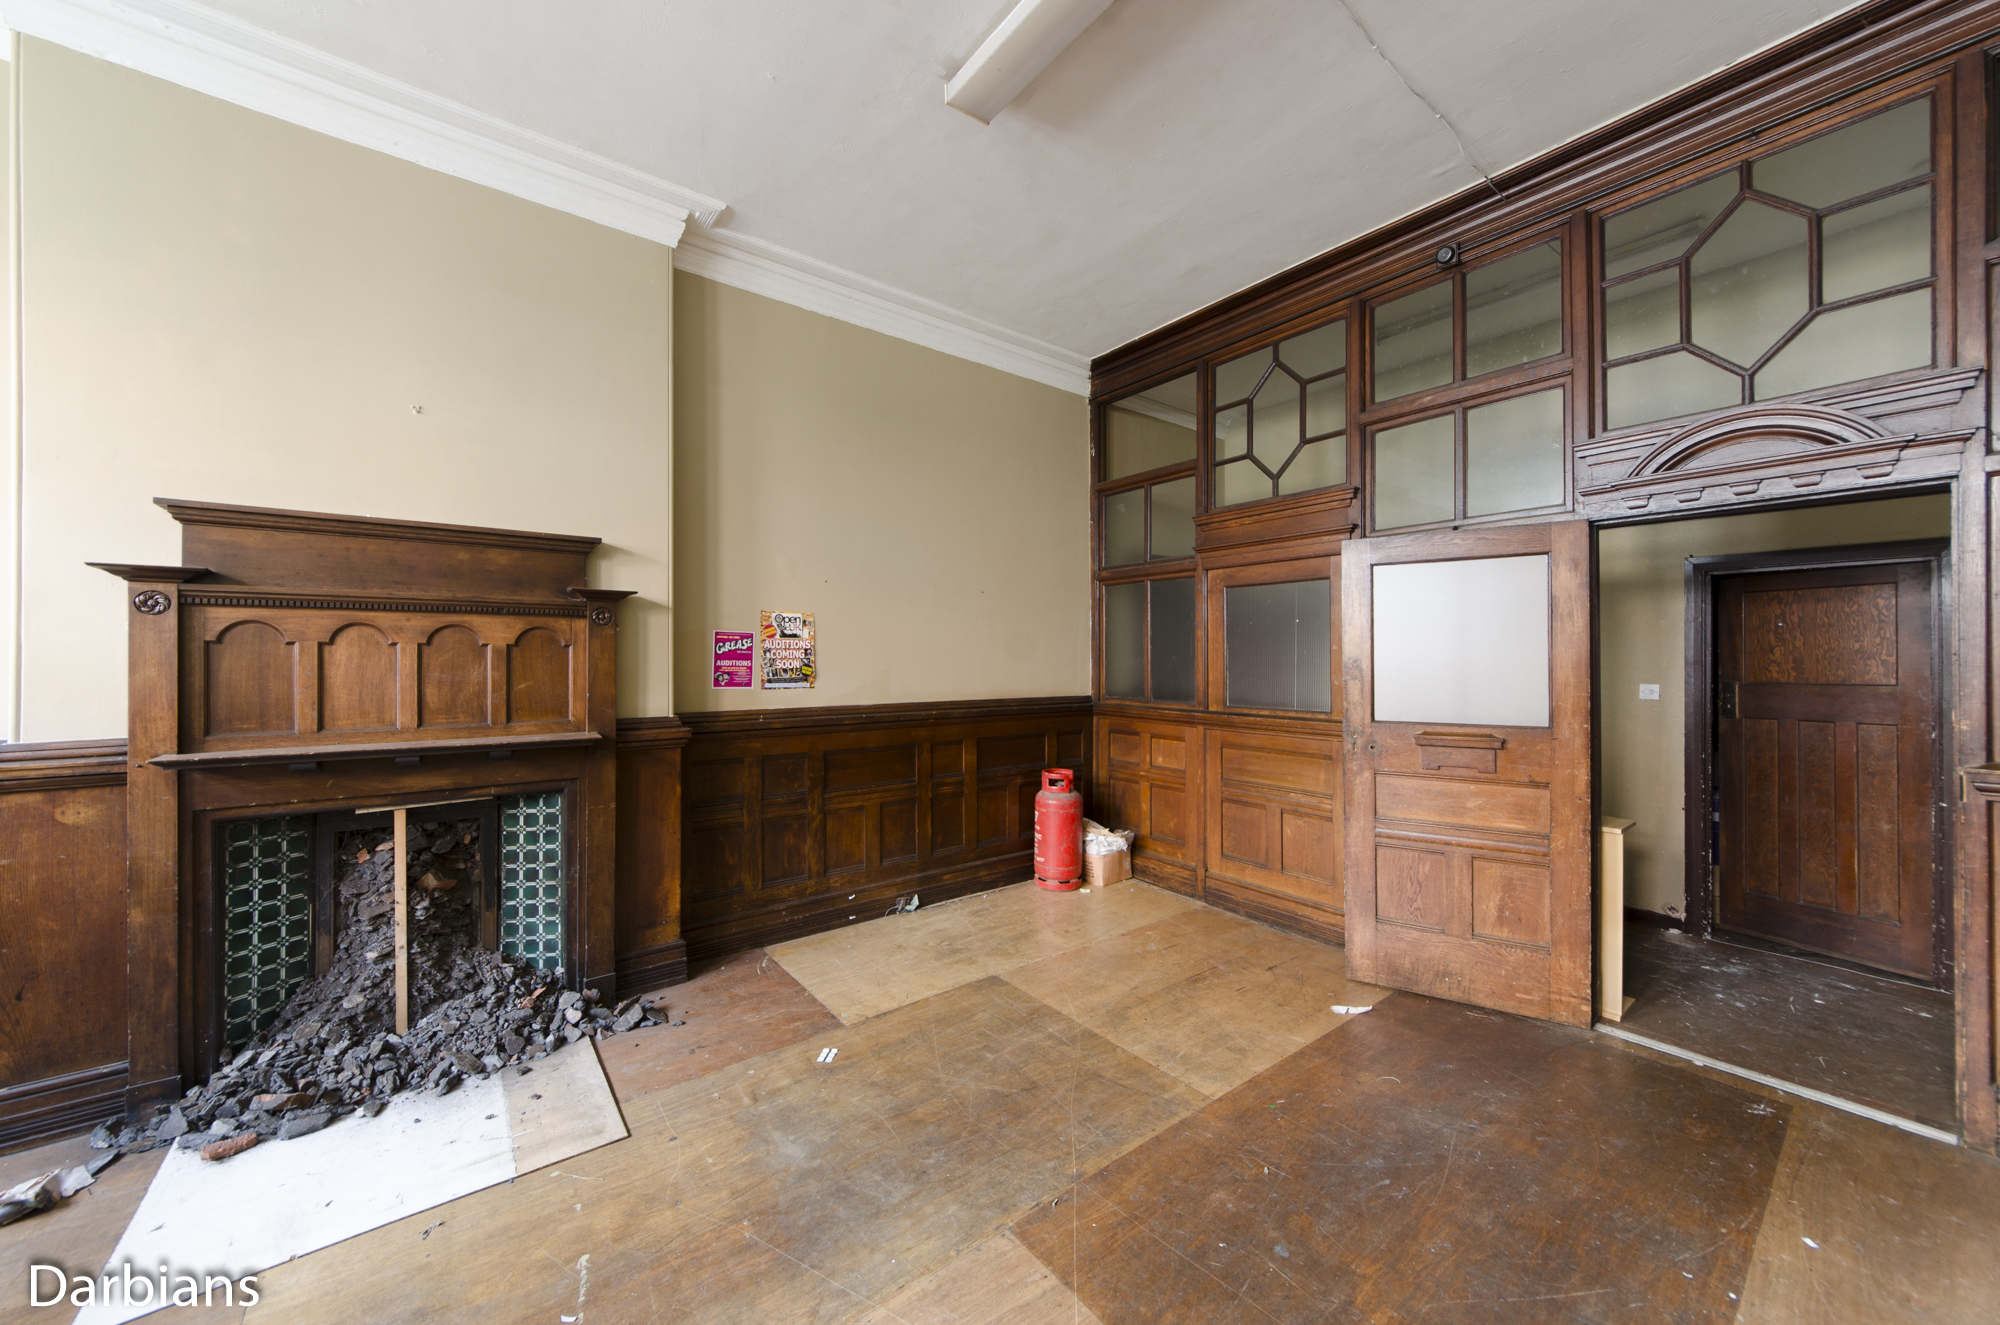 Cardiff Coal Exchange. Small wood panelled room.